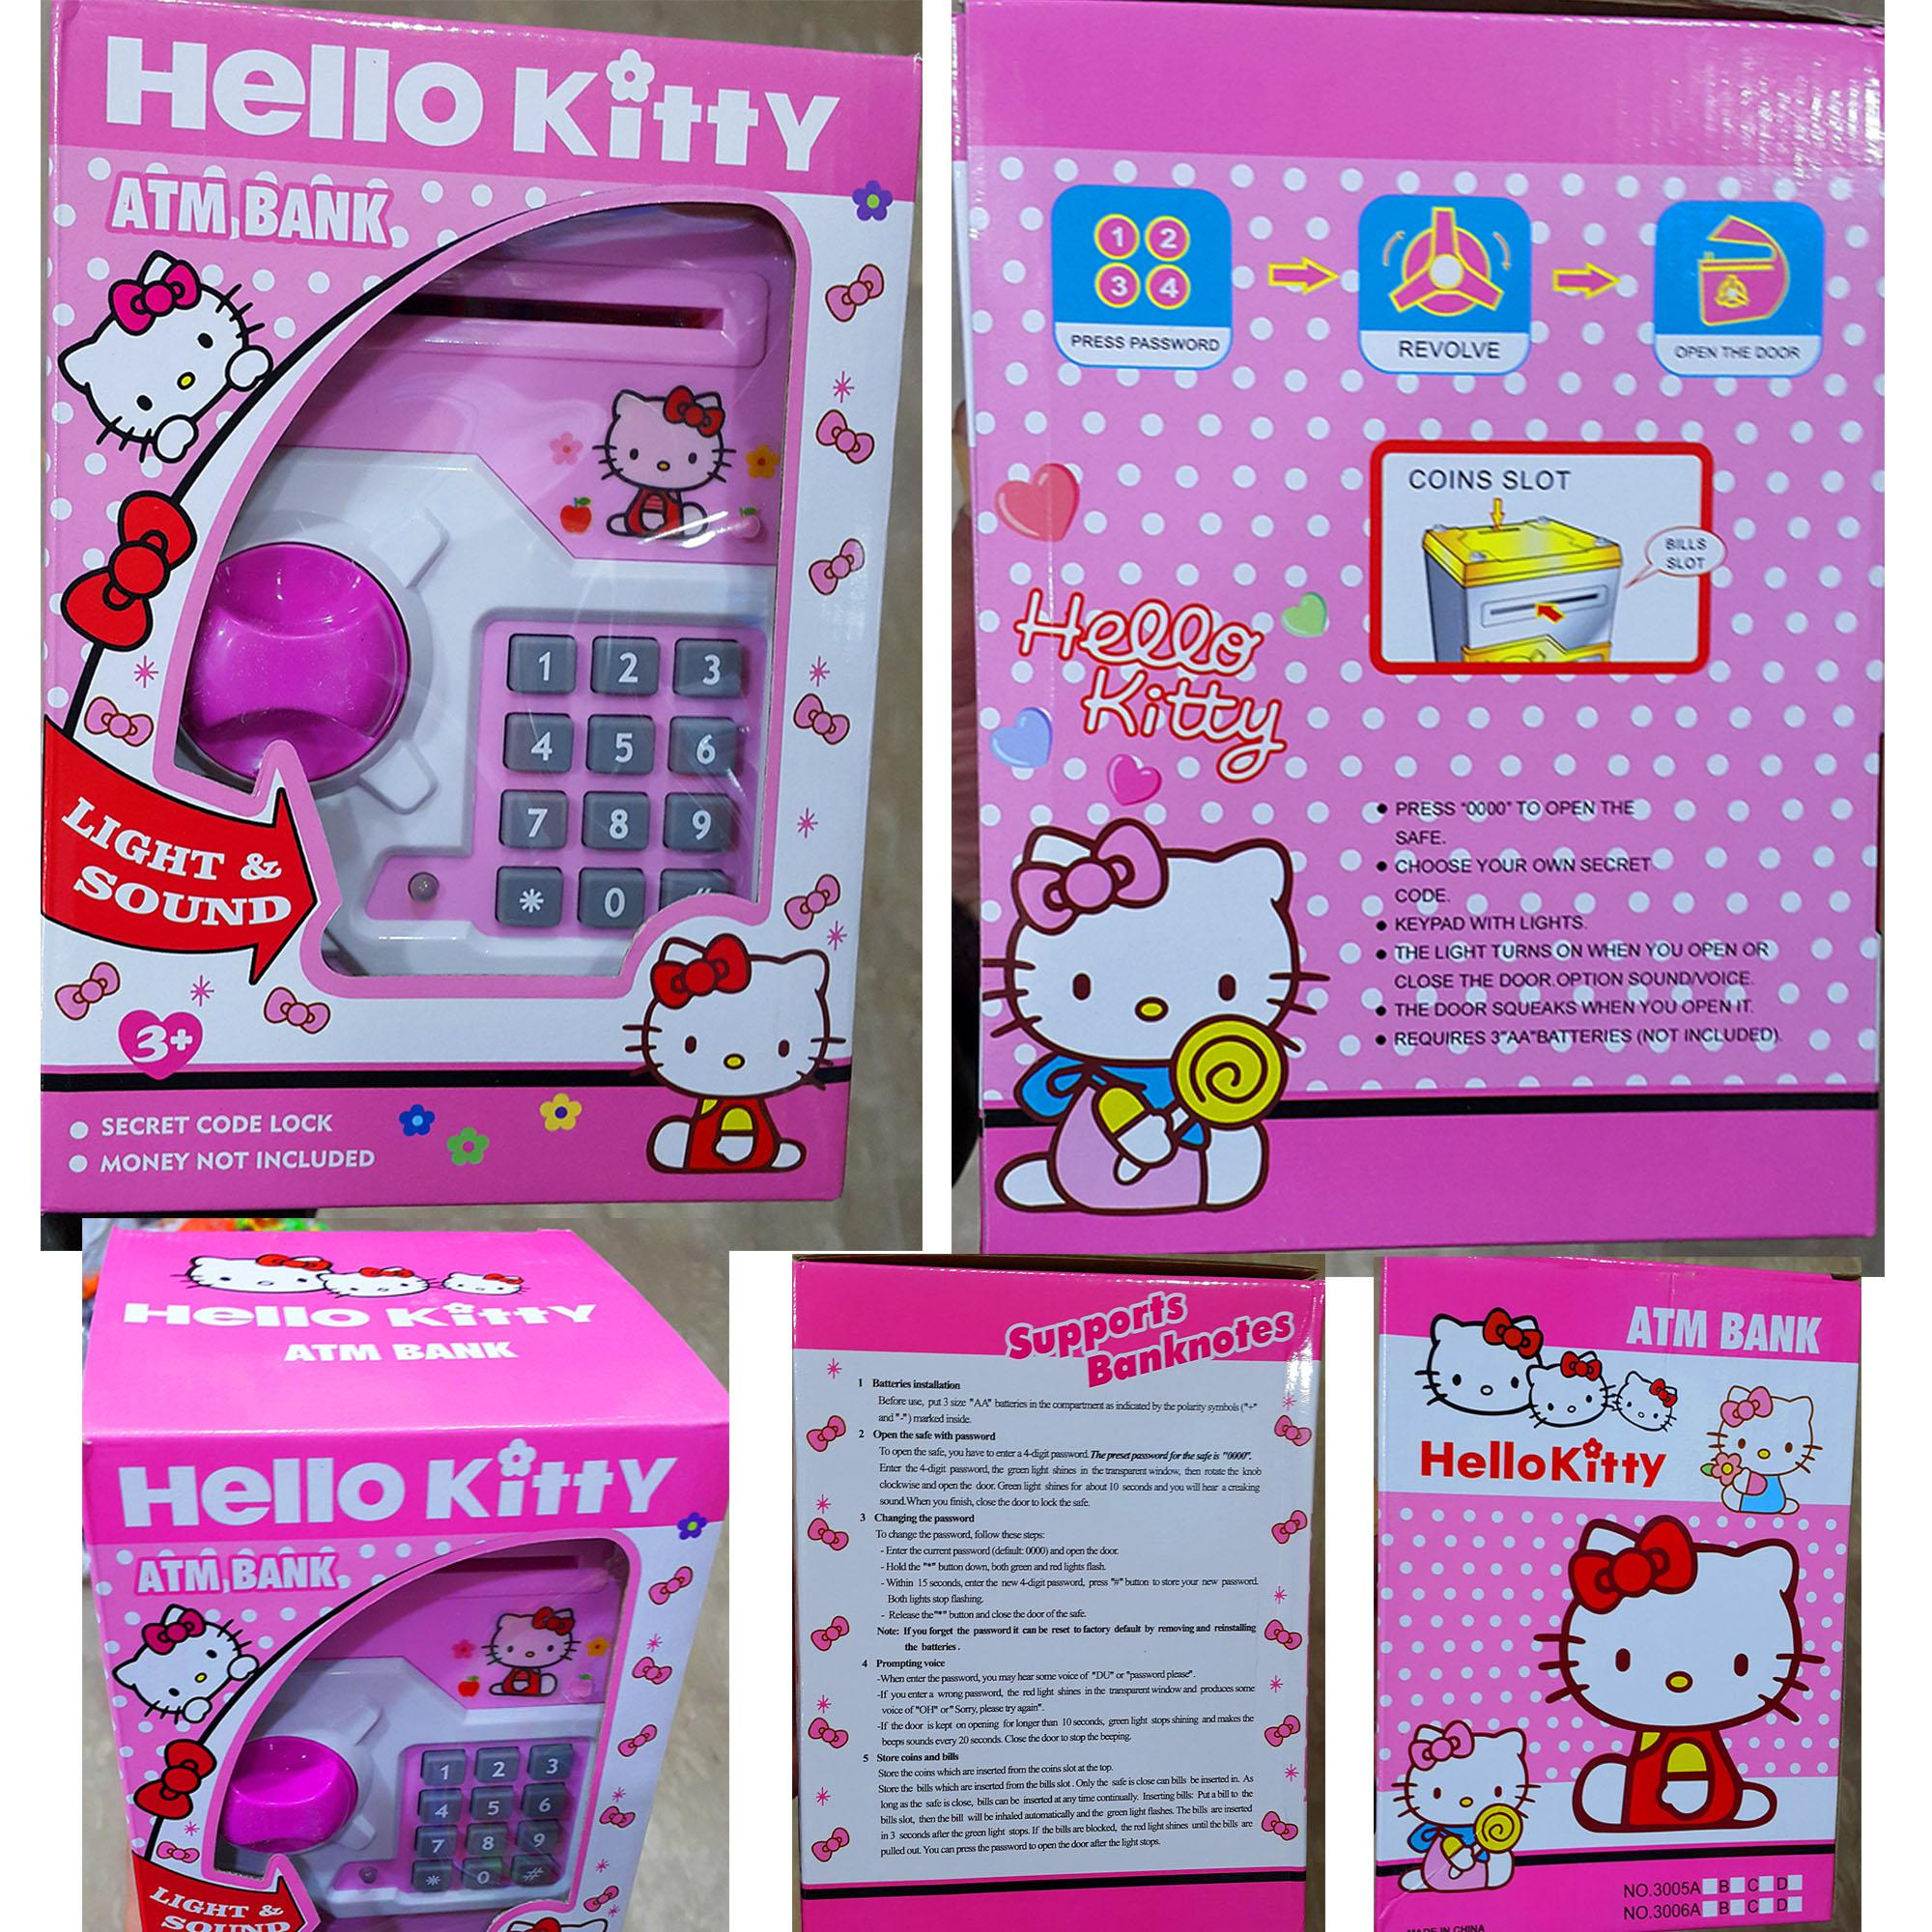 443819d62 Premium Hello Kitty Light & Sound Electronic ATM/Piggy Bank For Savings -  HKPB